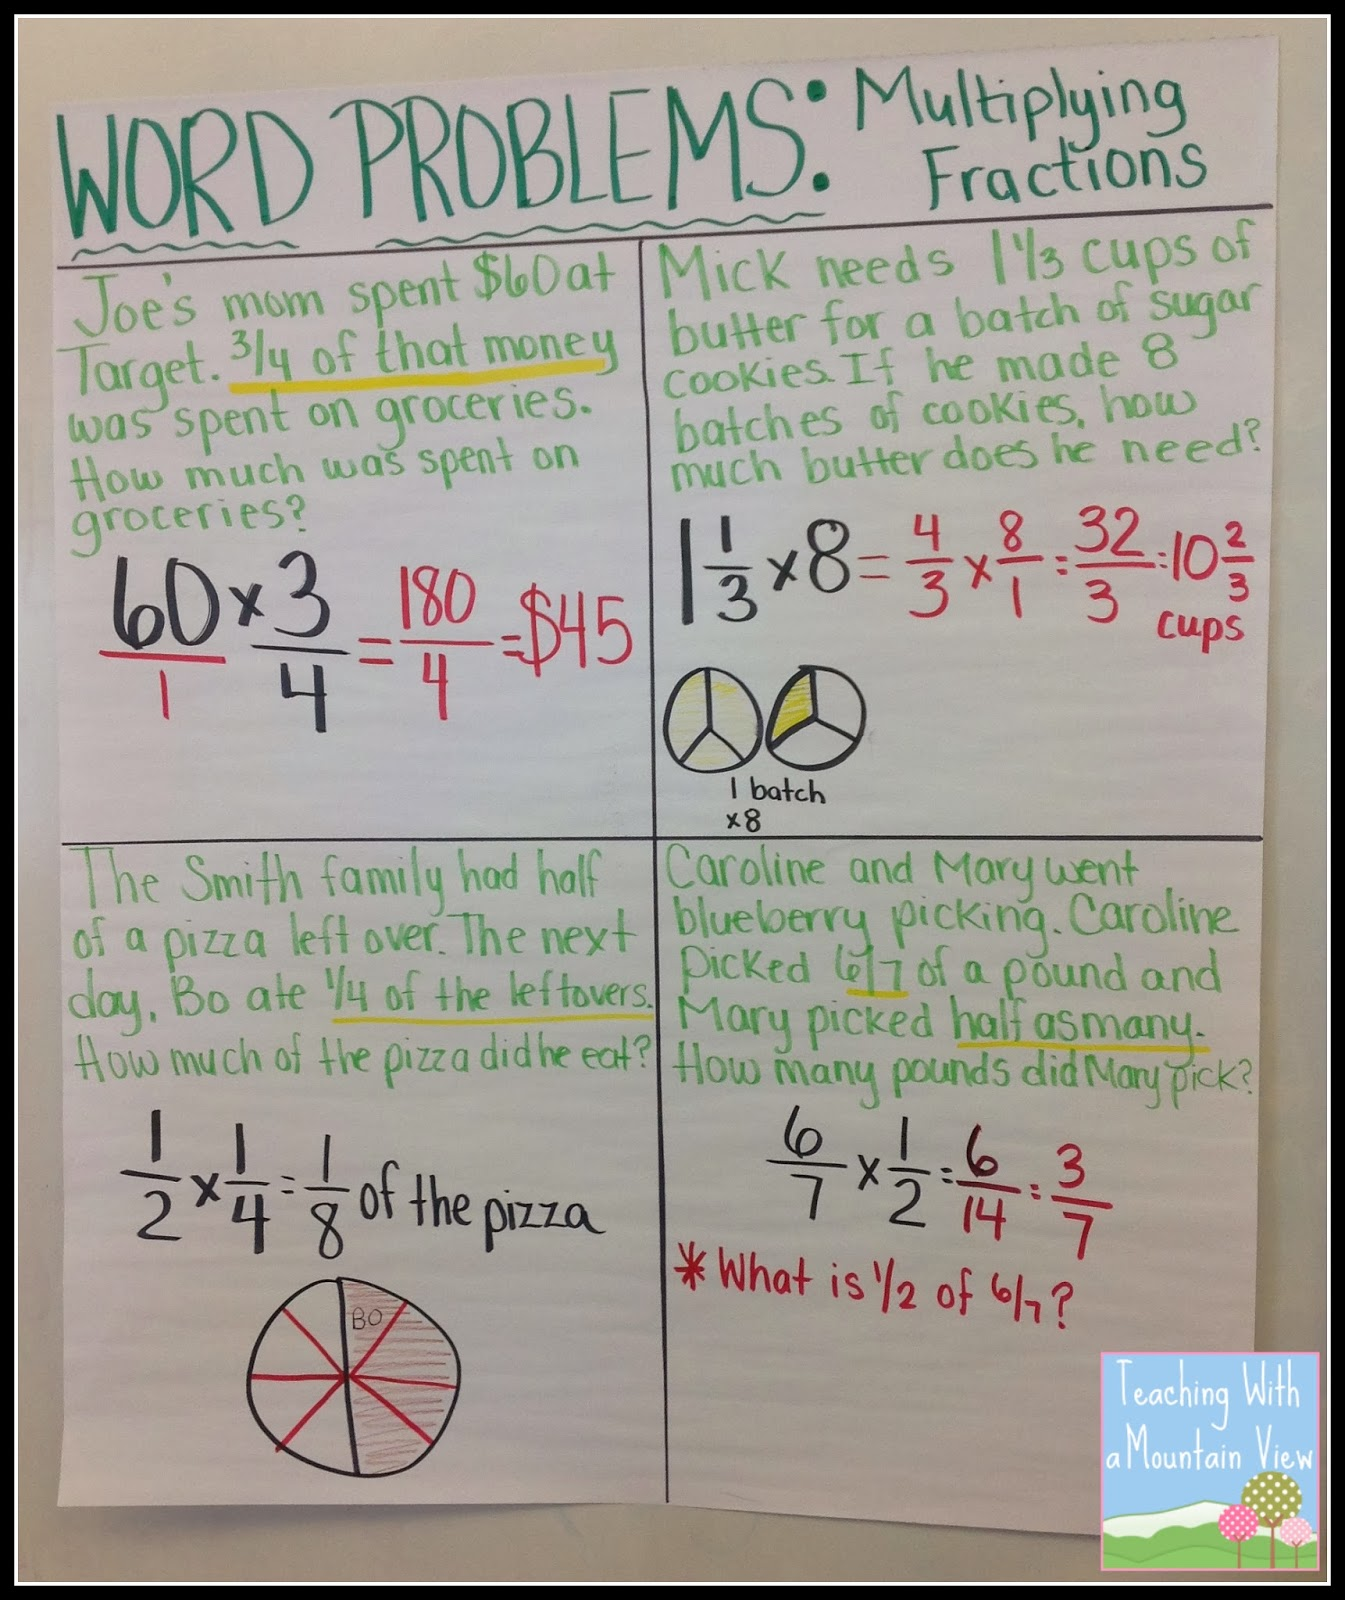 math worksheet : teaching with a mountain view making sense of multiplying  : Division Of Fractions Word Problems Worksheet